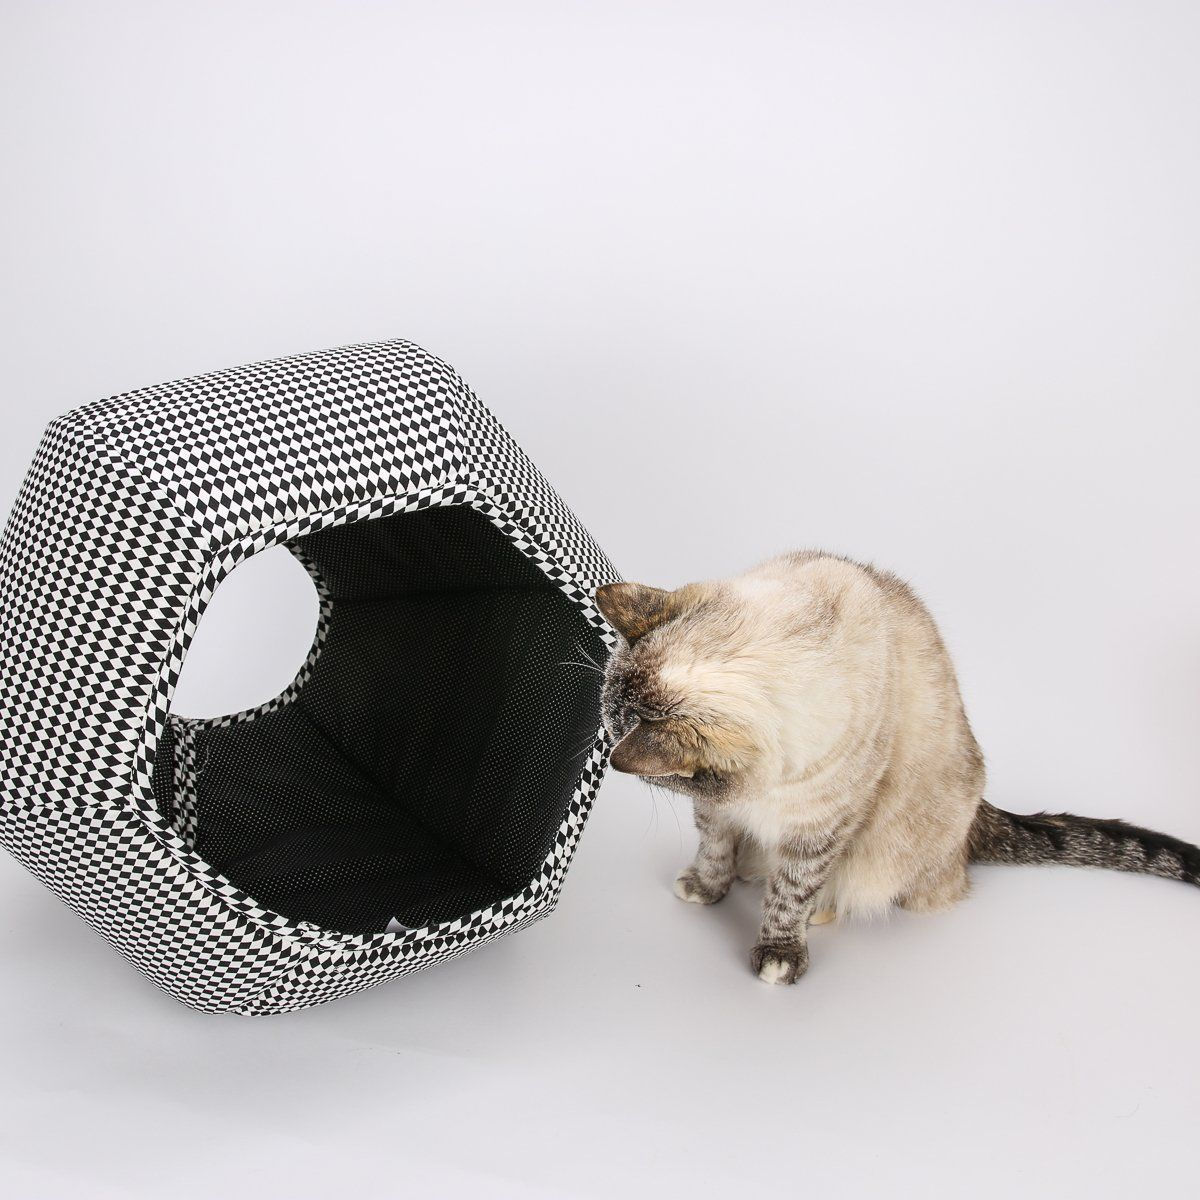 Modern Cat Bed In Black And White Harlequin Fabrics   The Cat Ball Cat Bed